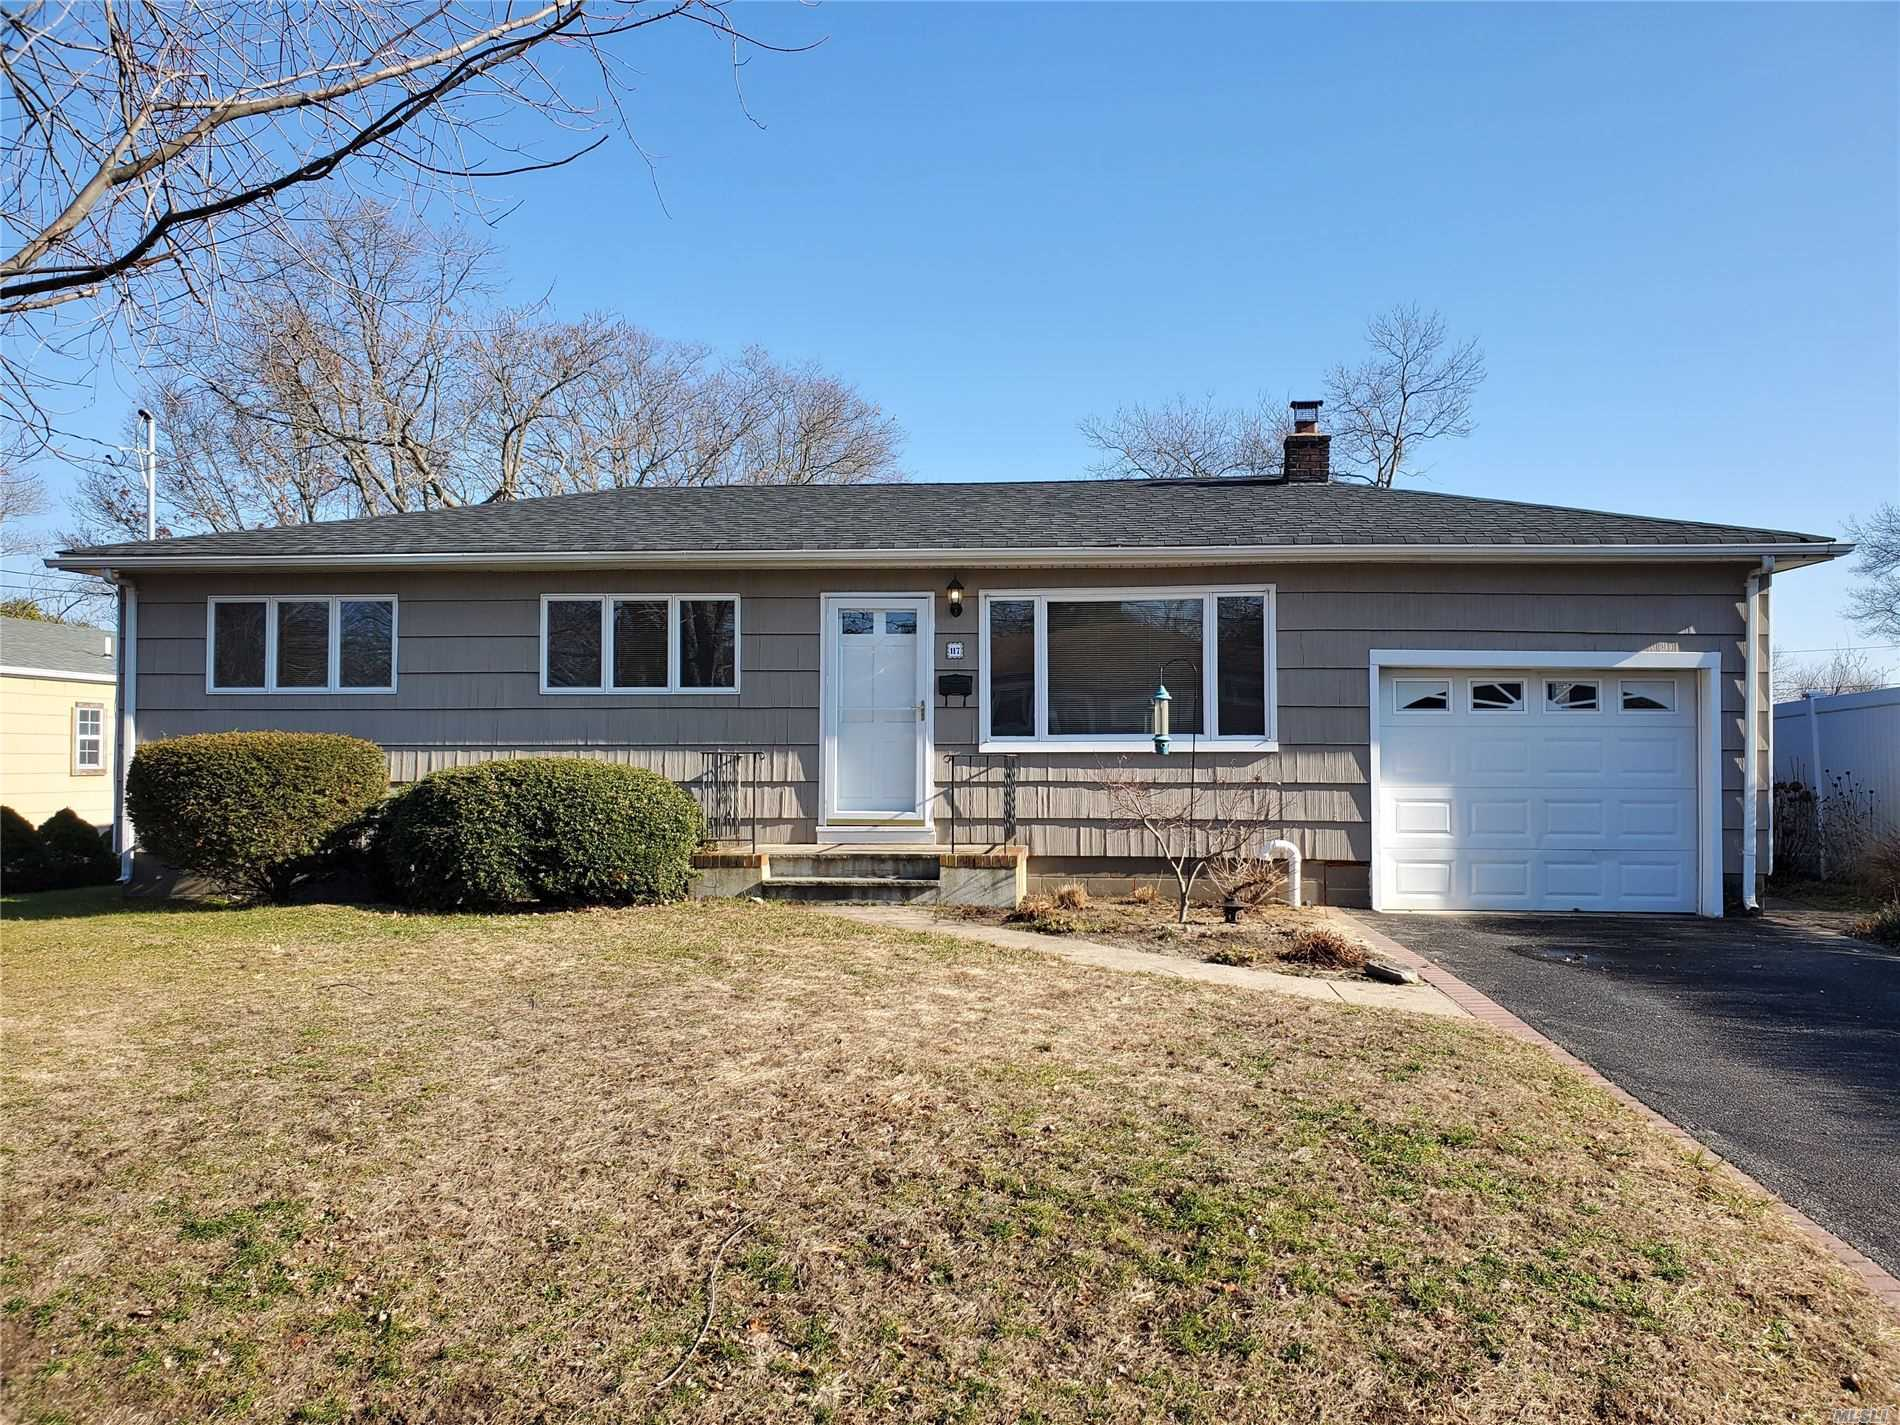 117 N Summit Ave - Patchogue, New York